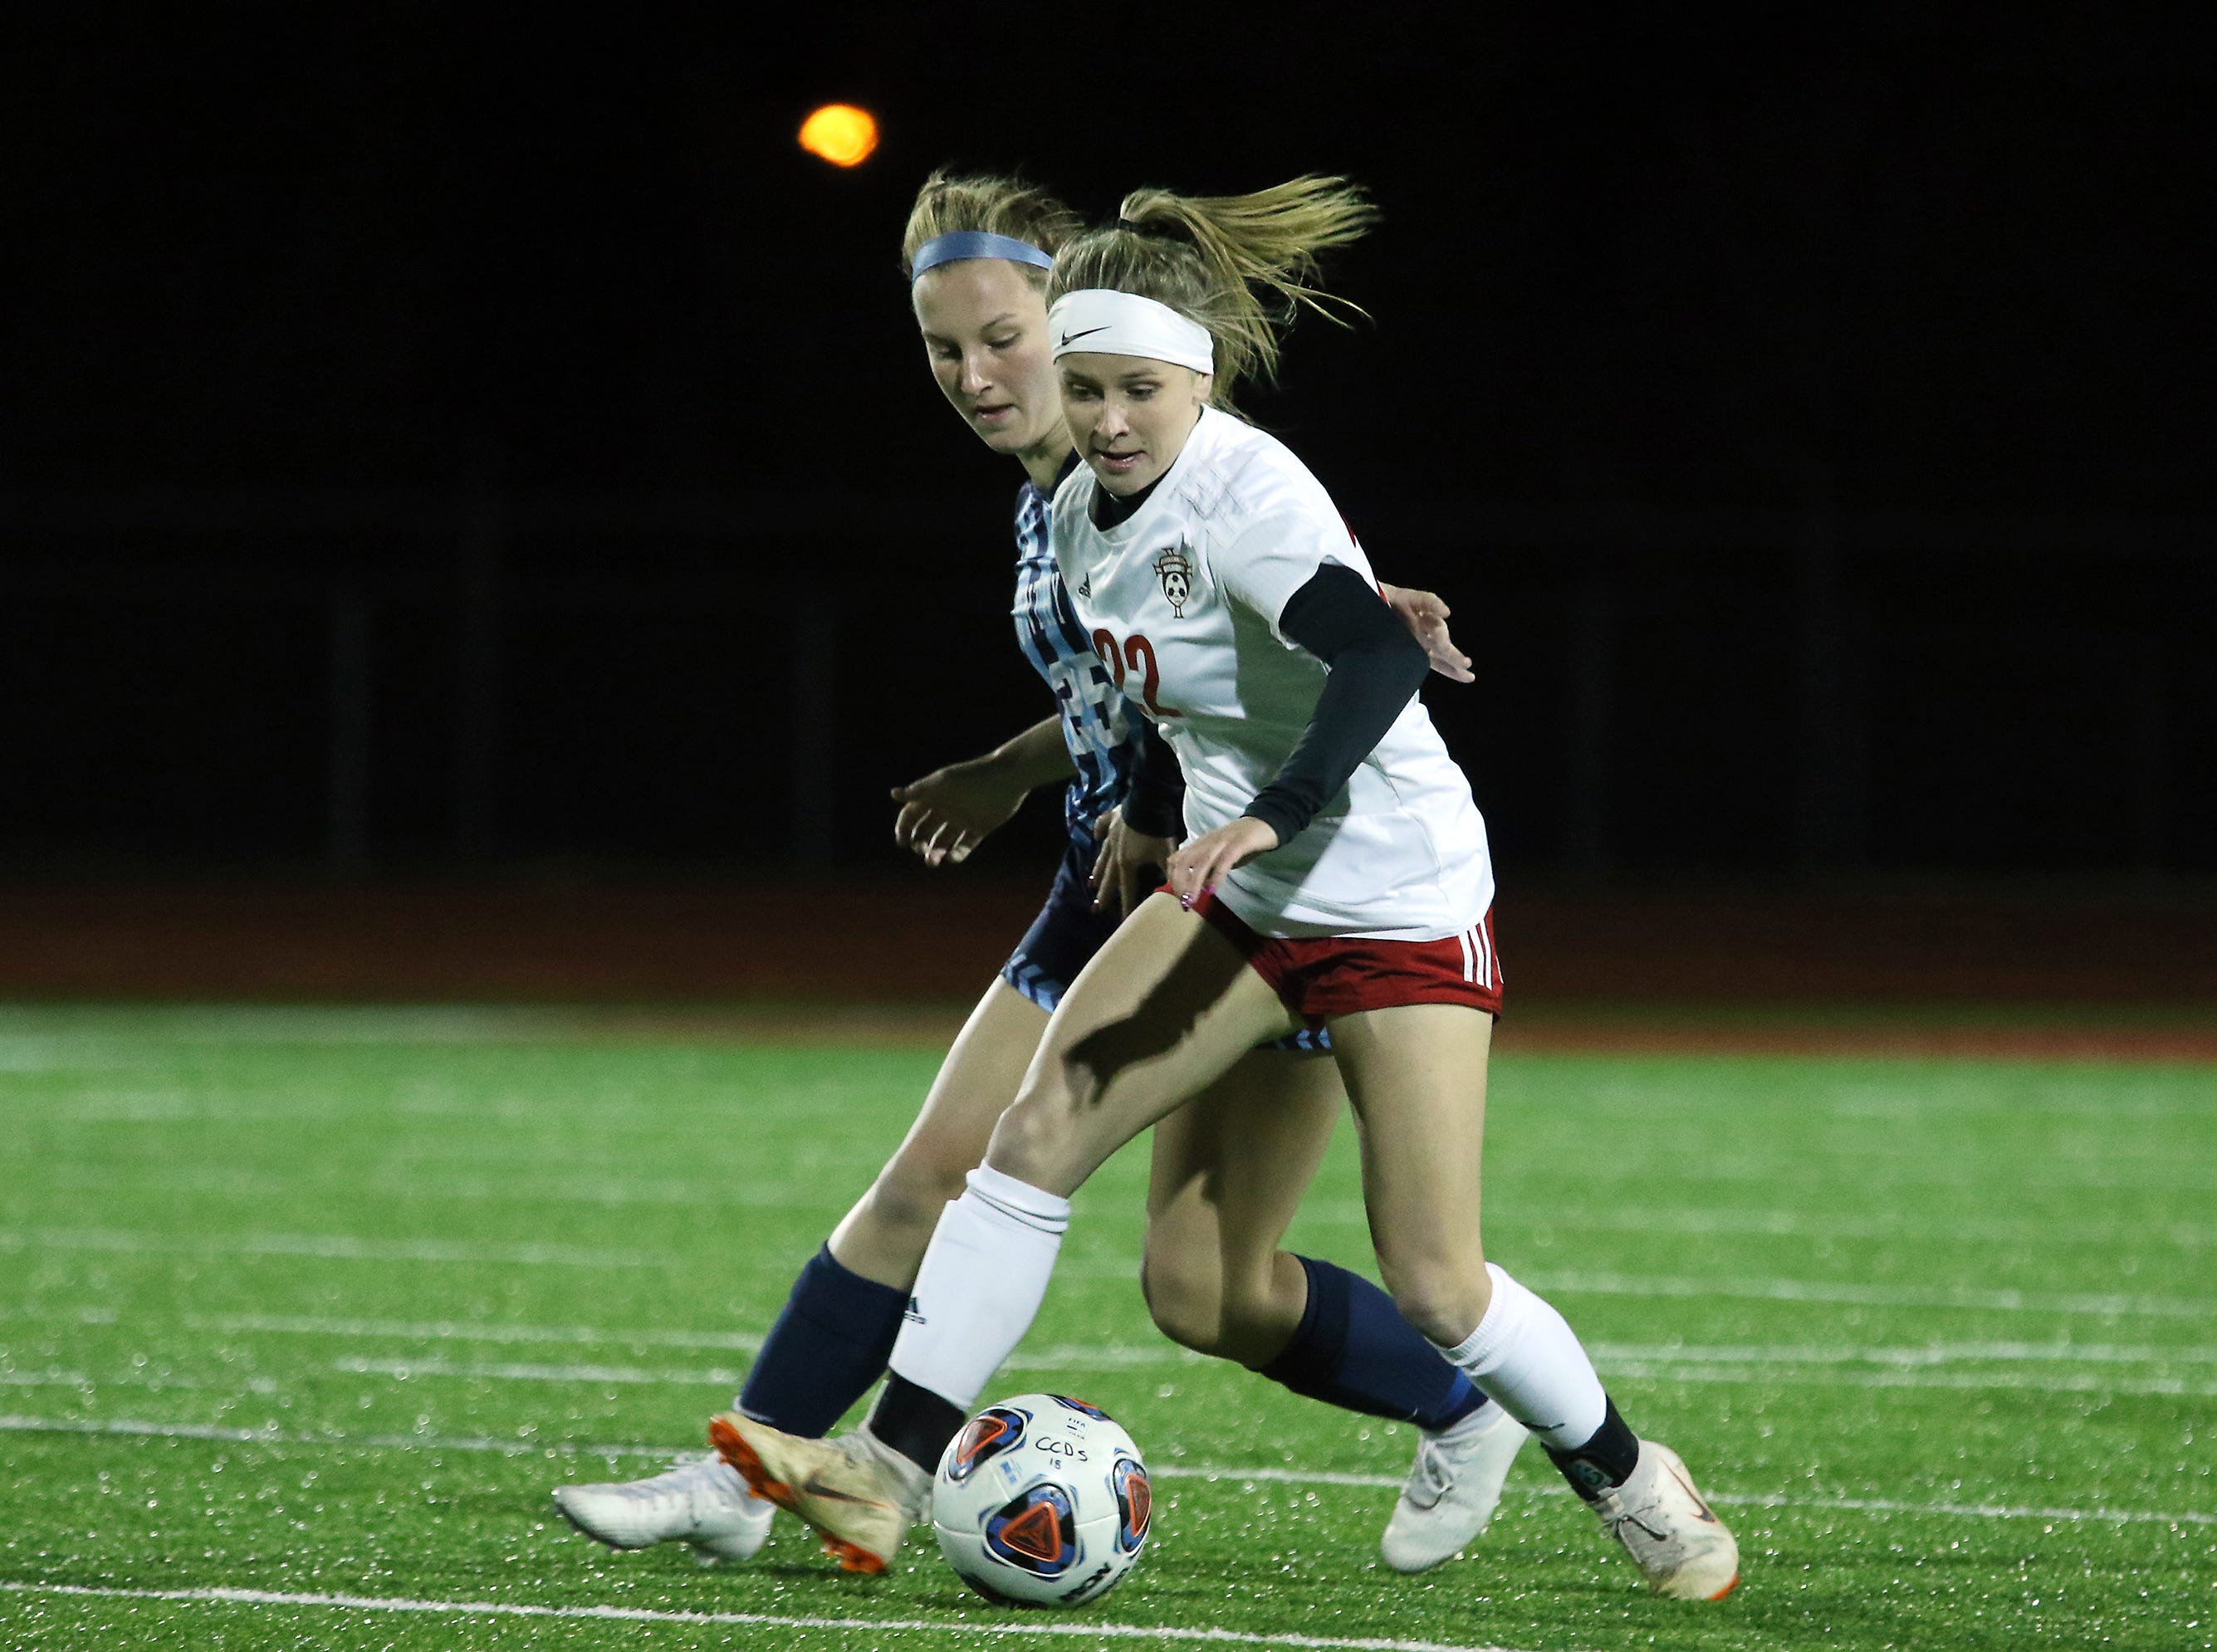 Rosecrans' Claire Creeks controls the ball against CCD in the Division III state semifinals at London High School on Tuesday.